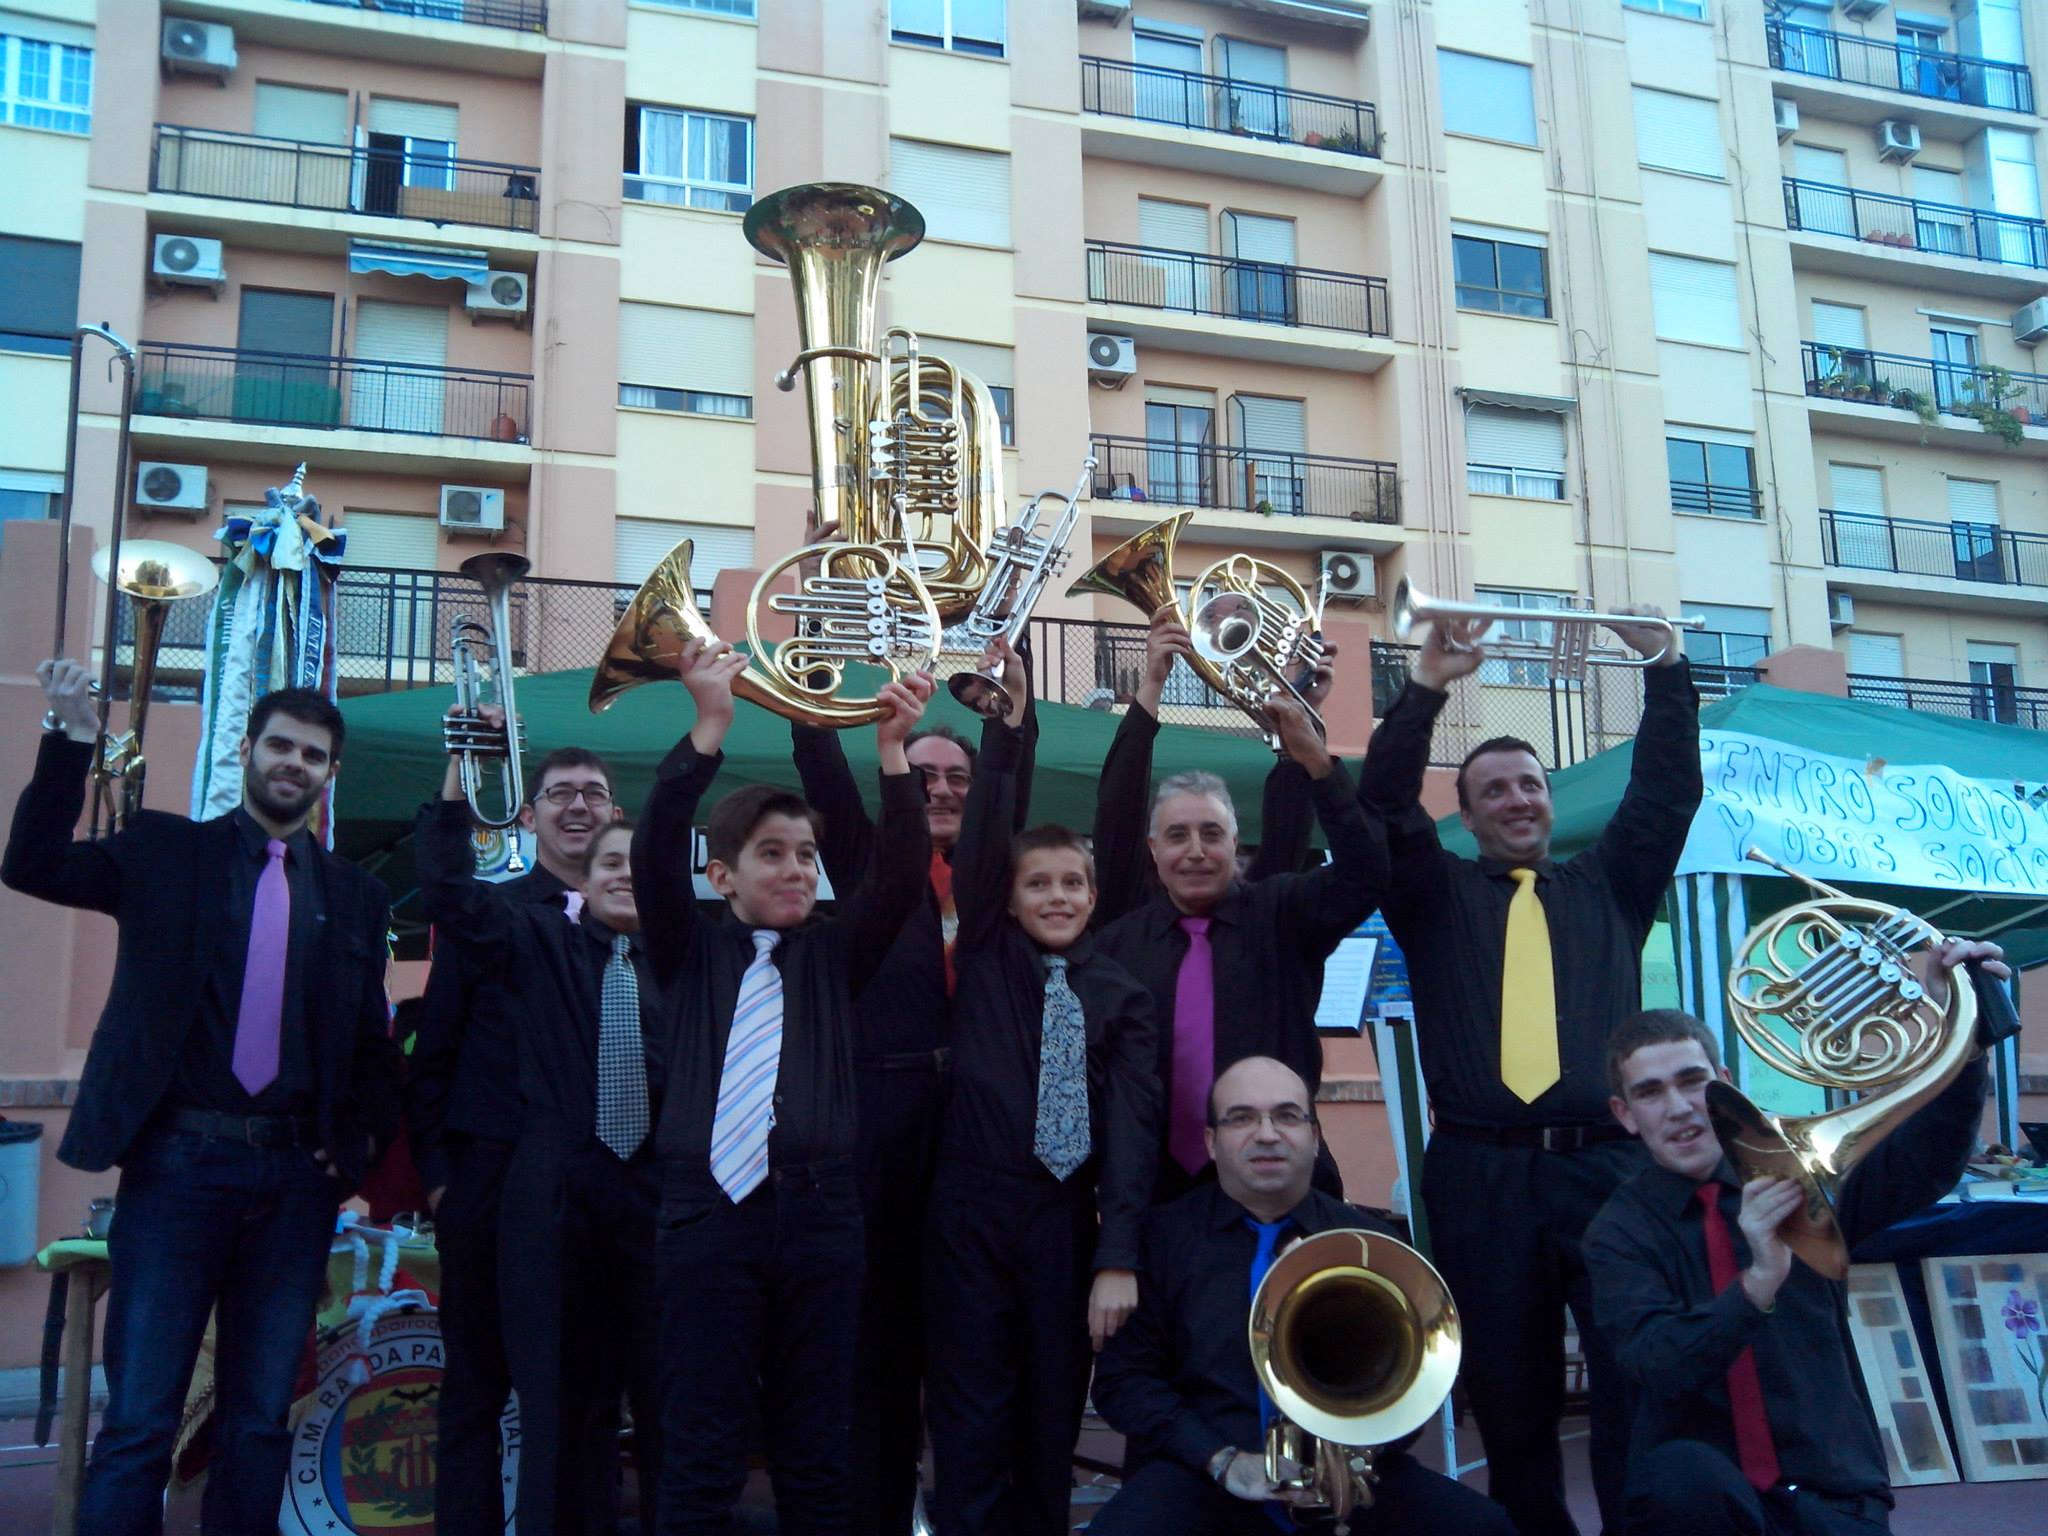 banda de metales - brass band